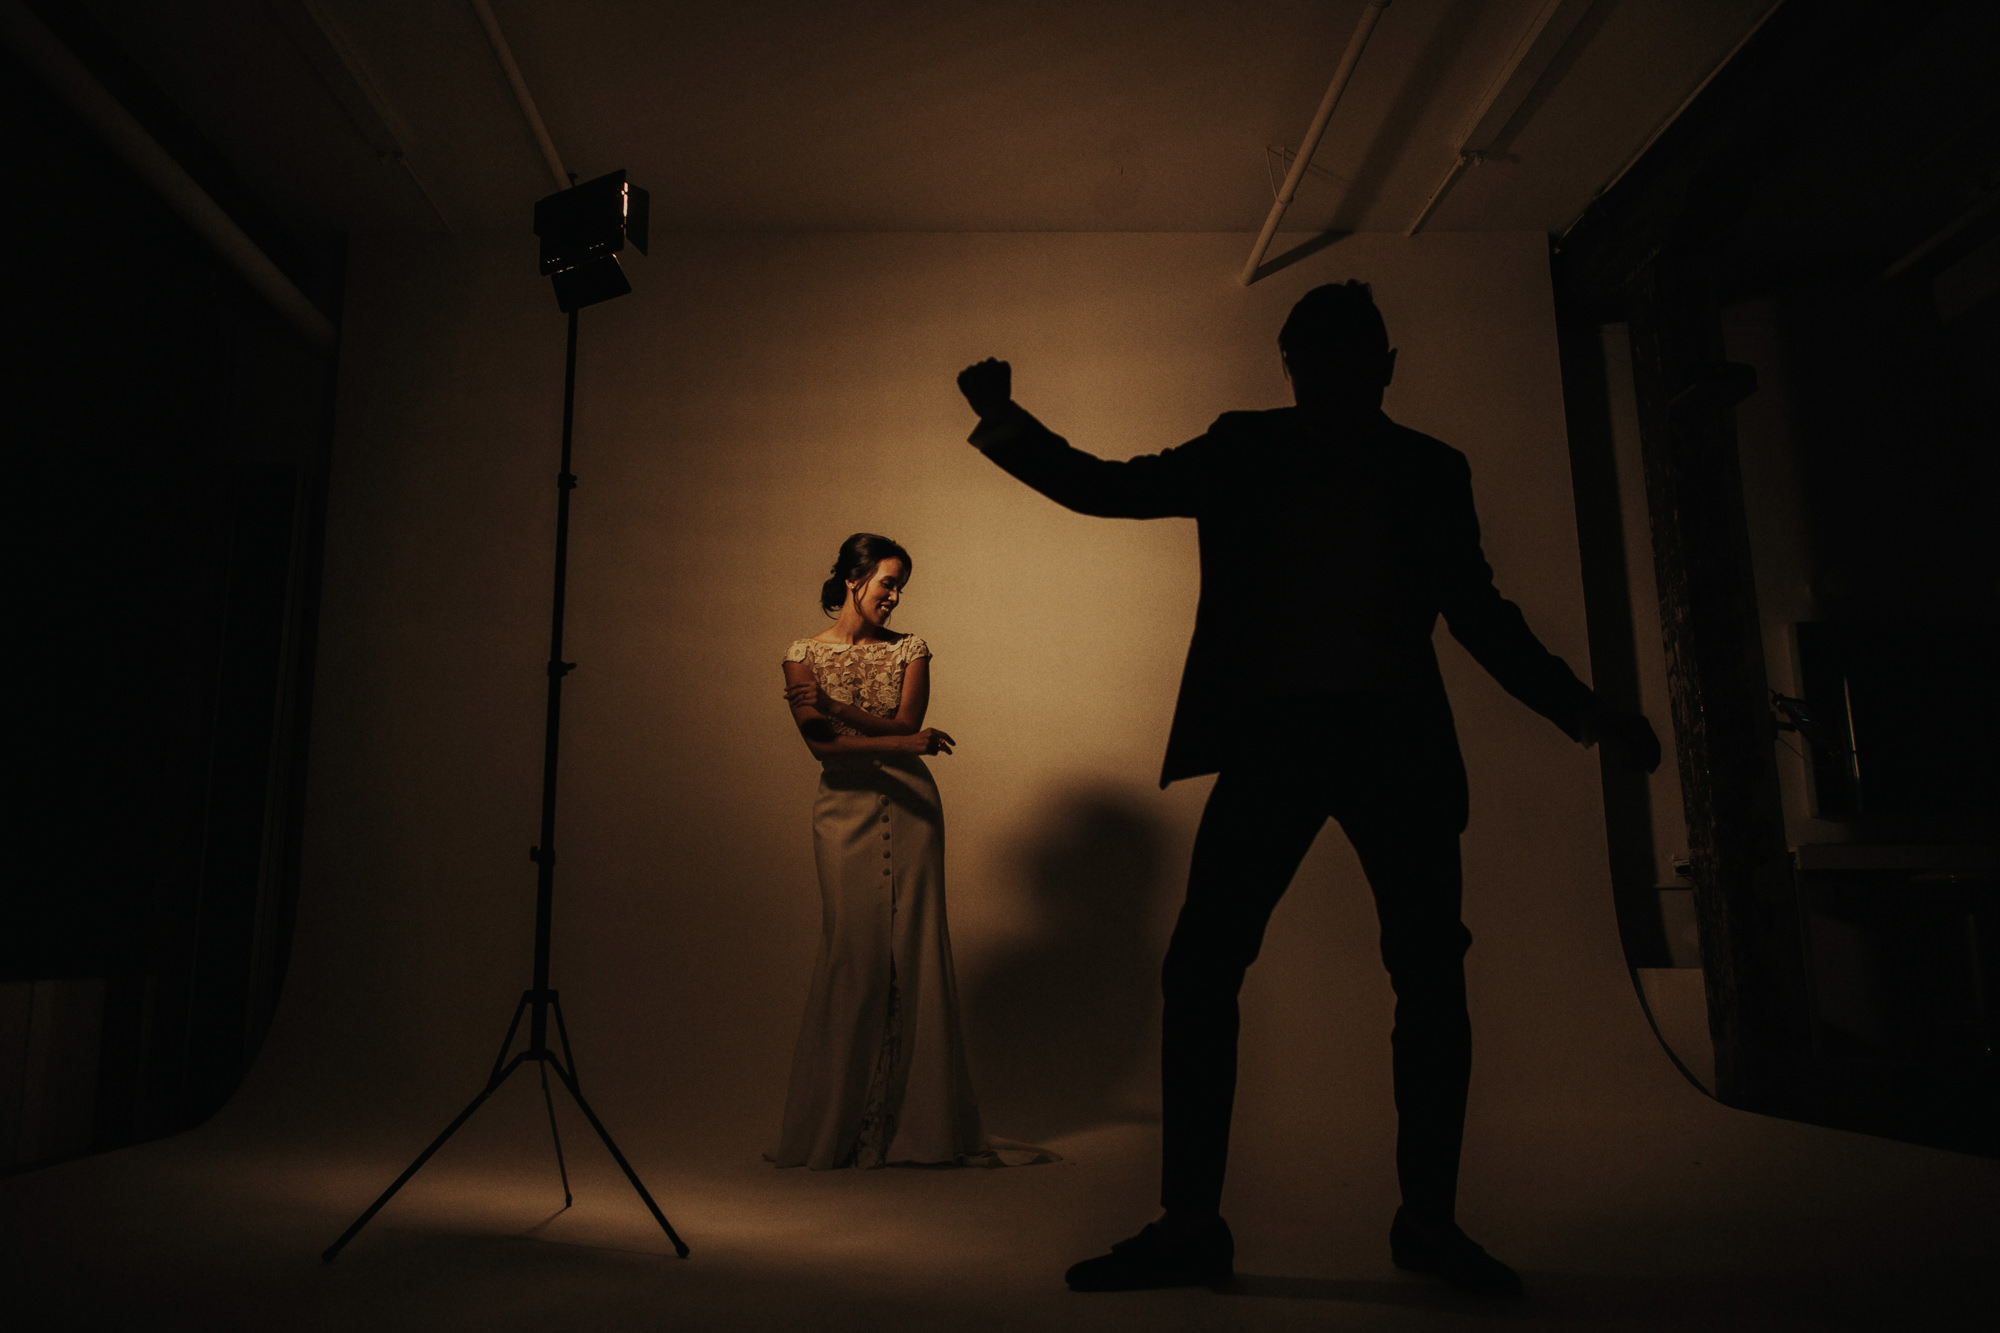 Silhouette of groom dancing and bride smiling in studio -  photo by Dan O'Day